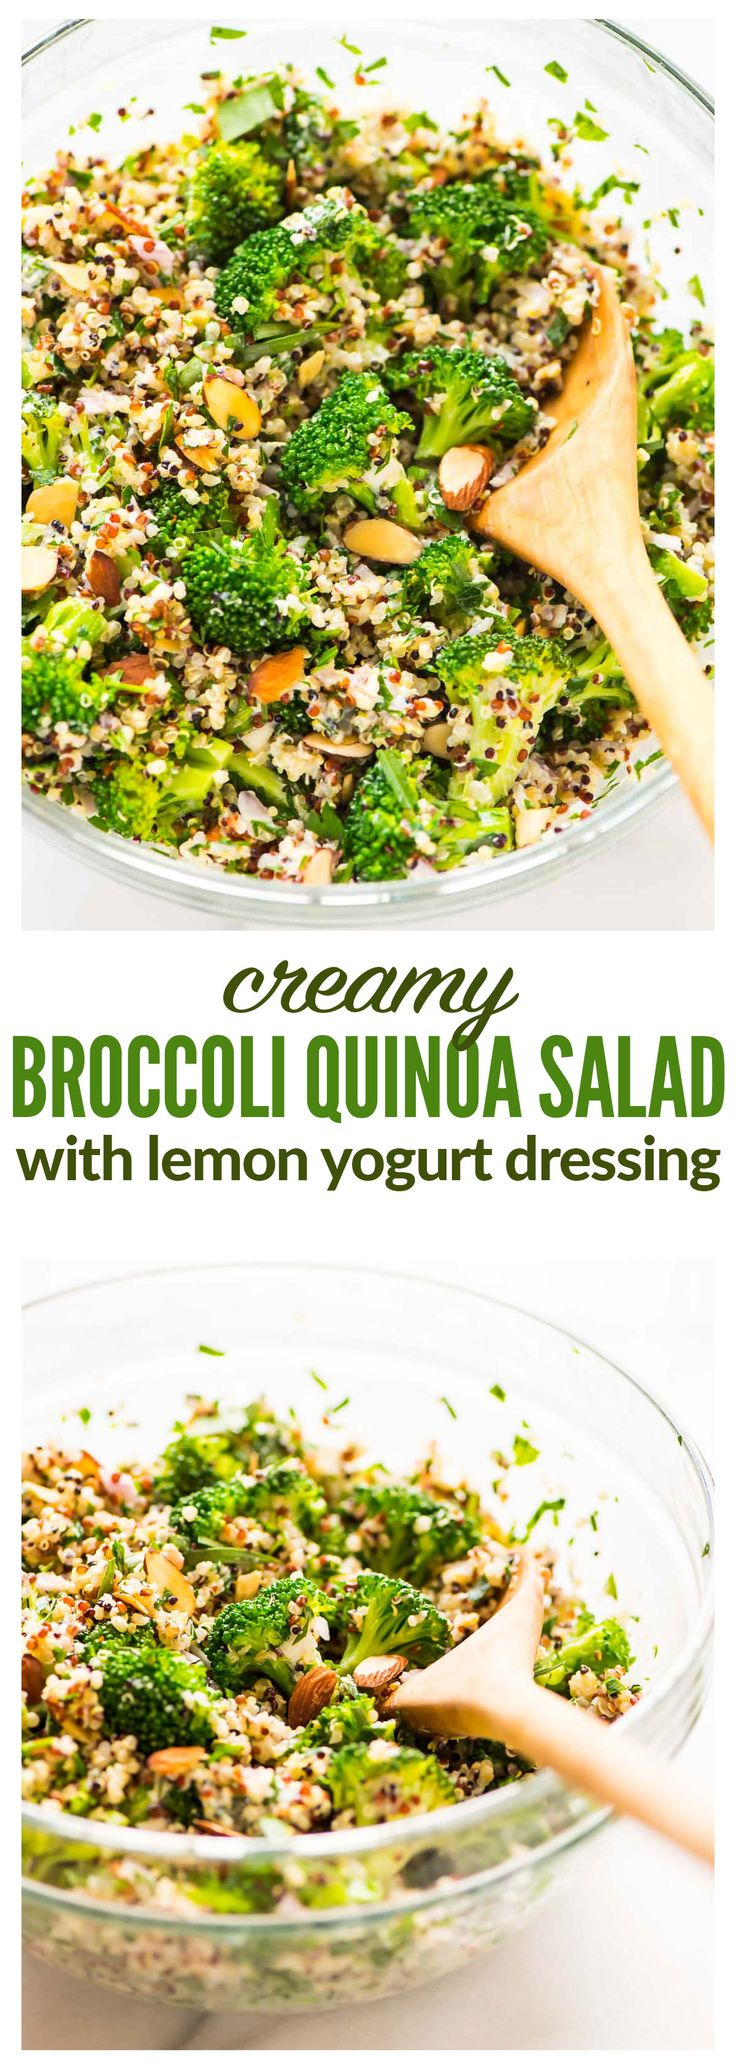 Creamy Broccoli Quinoa Salad with Greek Yogurt Lemon Dressing. Healthy and protein packed! Perfect for make ahead meals, light lunches, and potluck side dishes. {gluten free} Recipe at wellplated.com | @wellplated (Quinoa Salad Recipes)